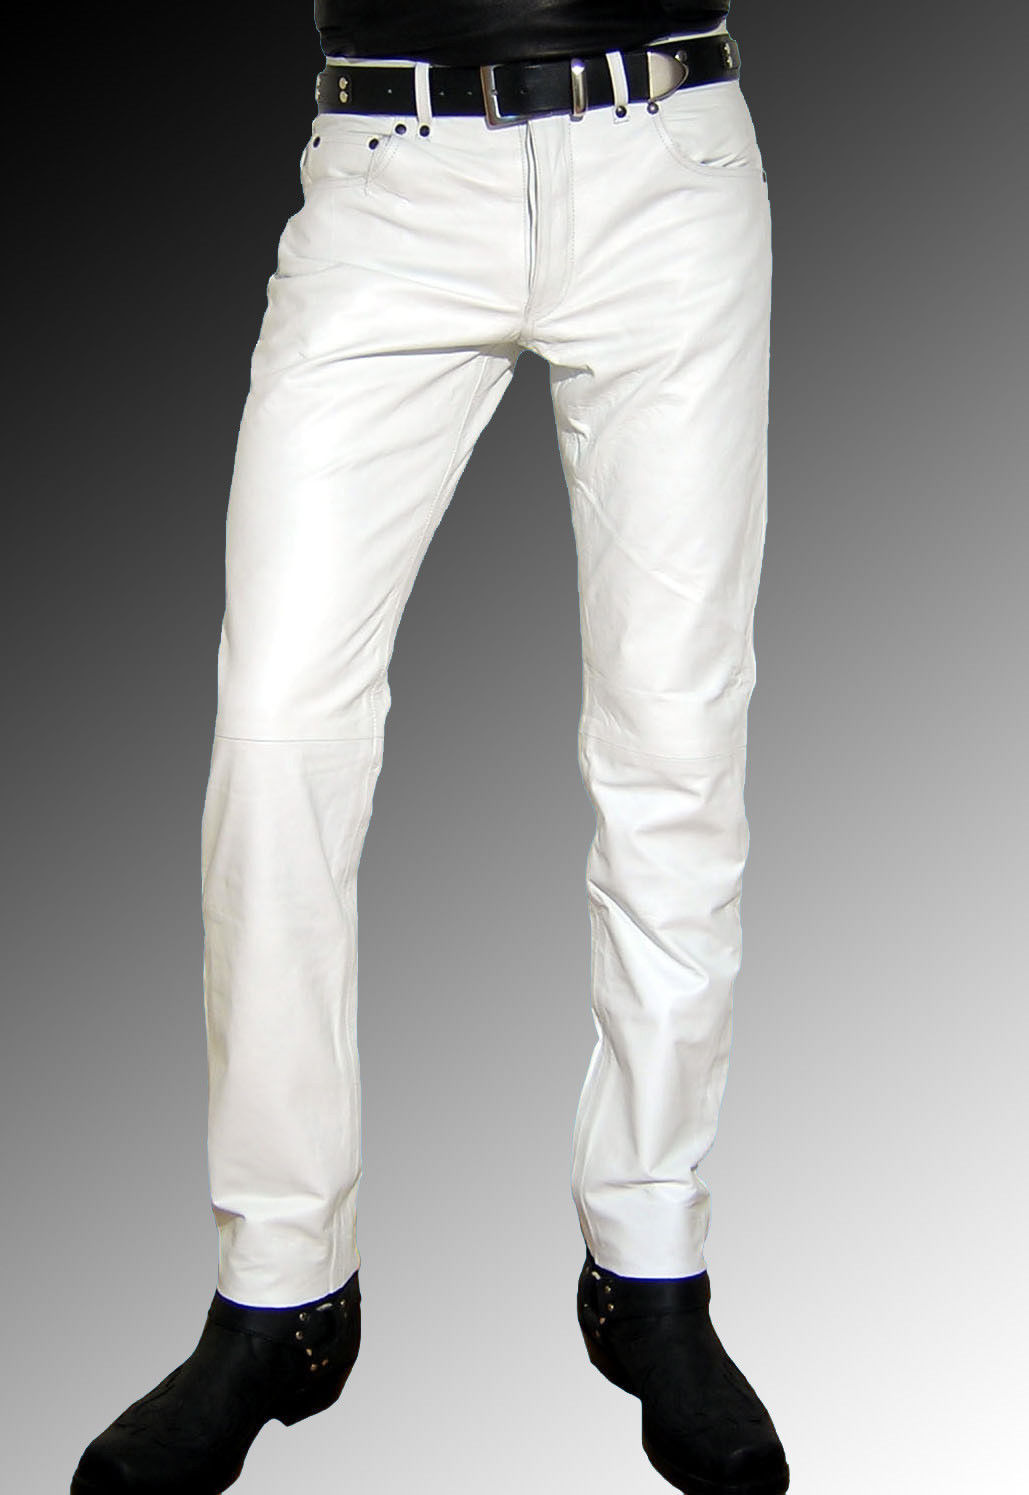 White Jeans For Big And Tall Men